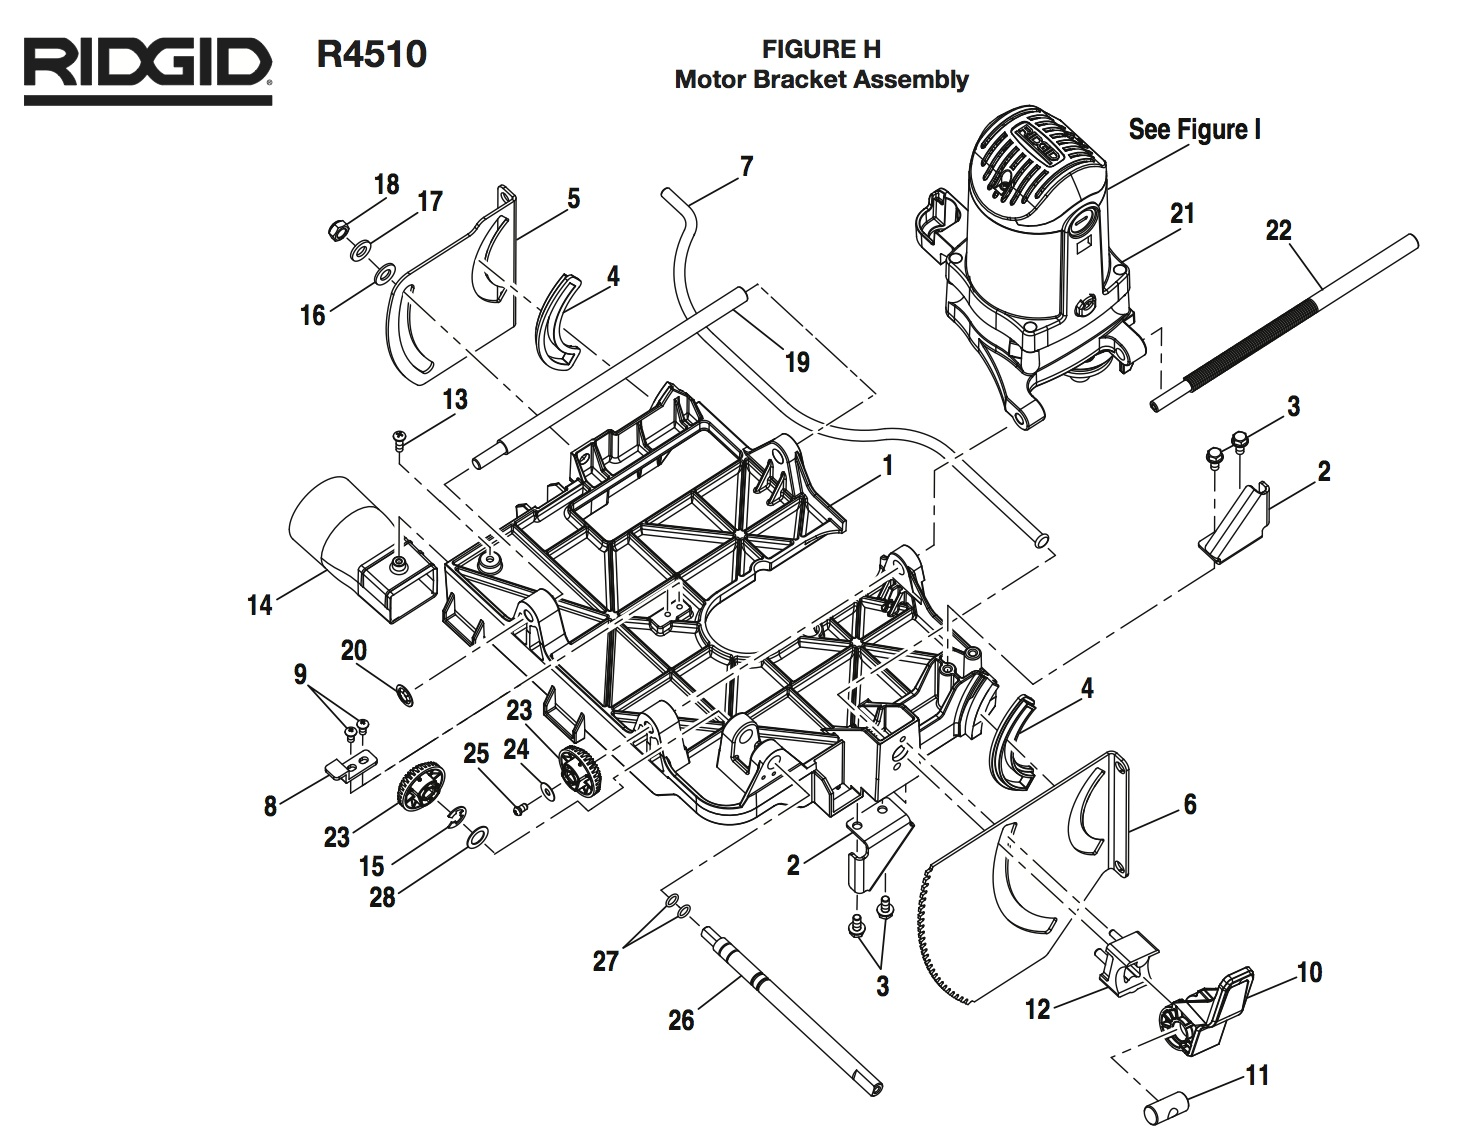 ridgid table saw r4510 wiring diagram